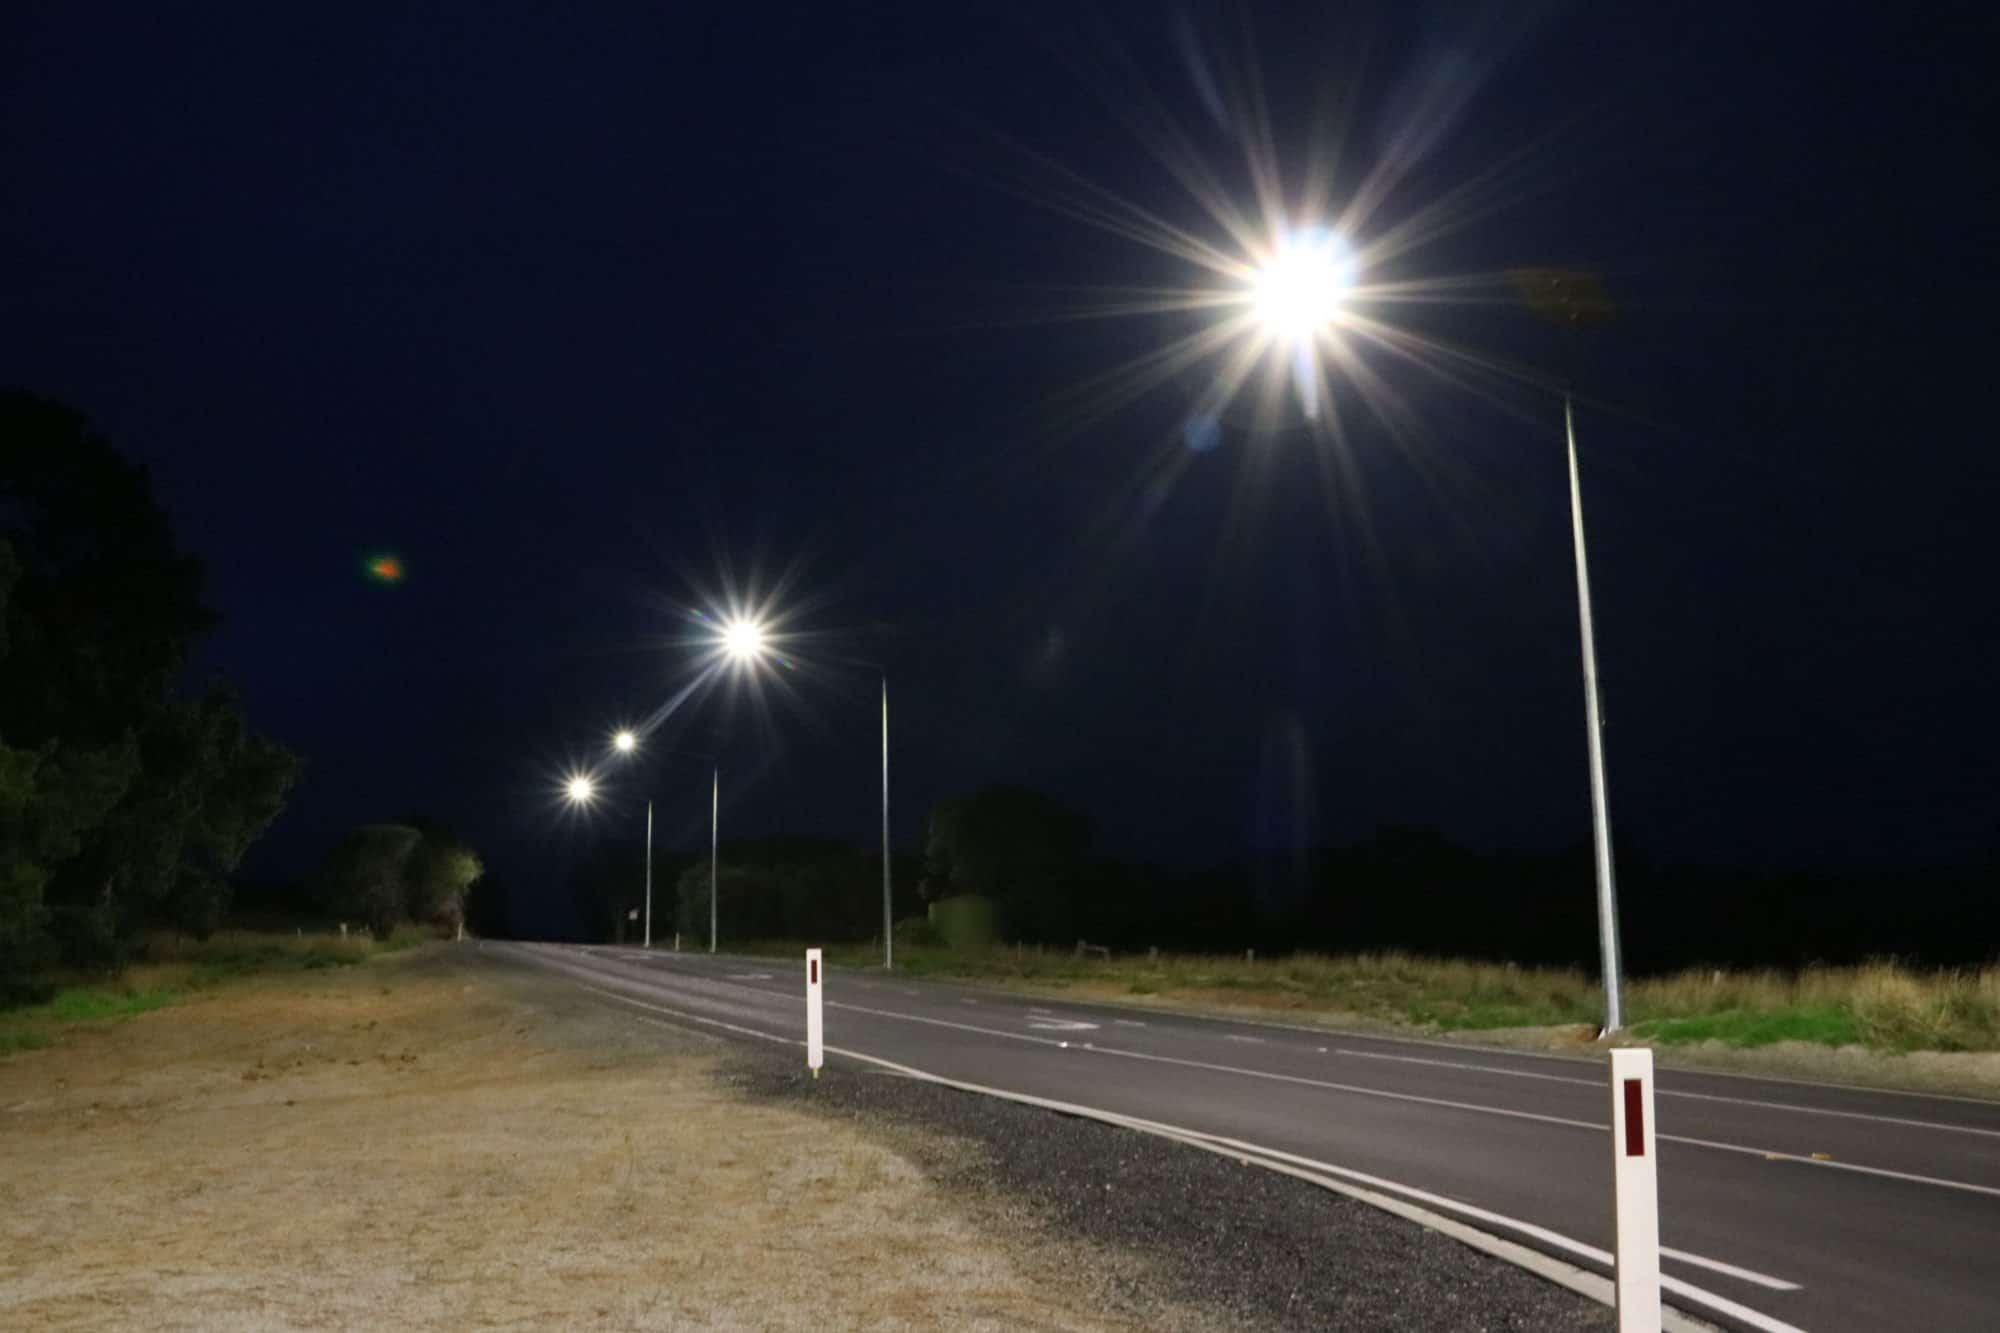 solar roadway v-cat lighting project at Victor Harbor